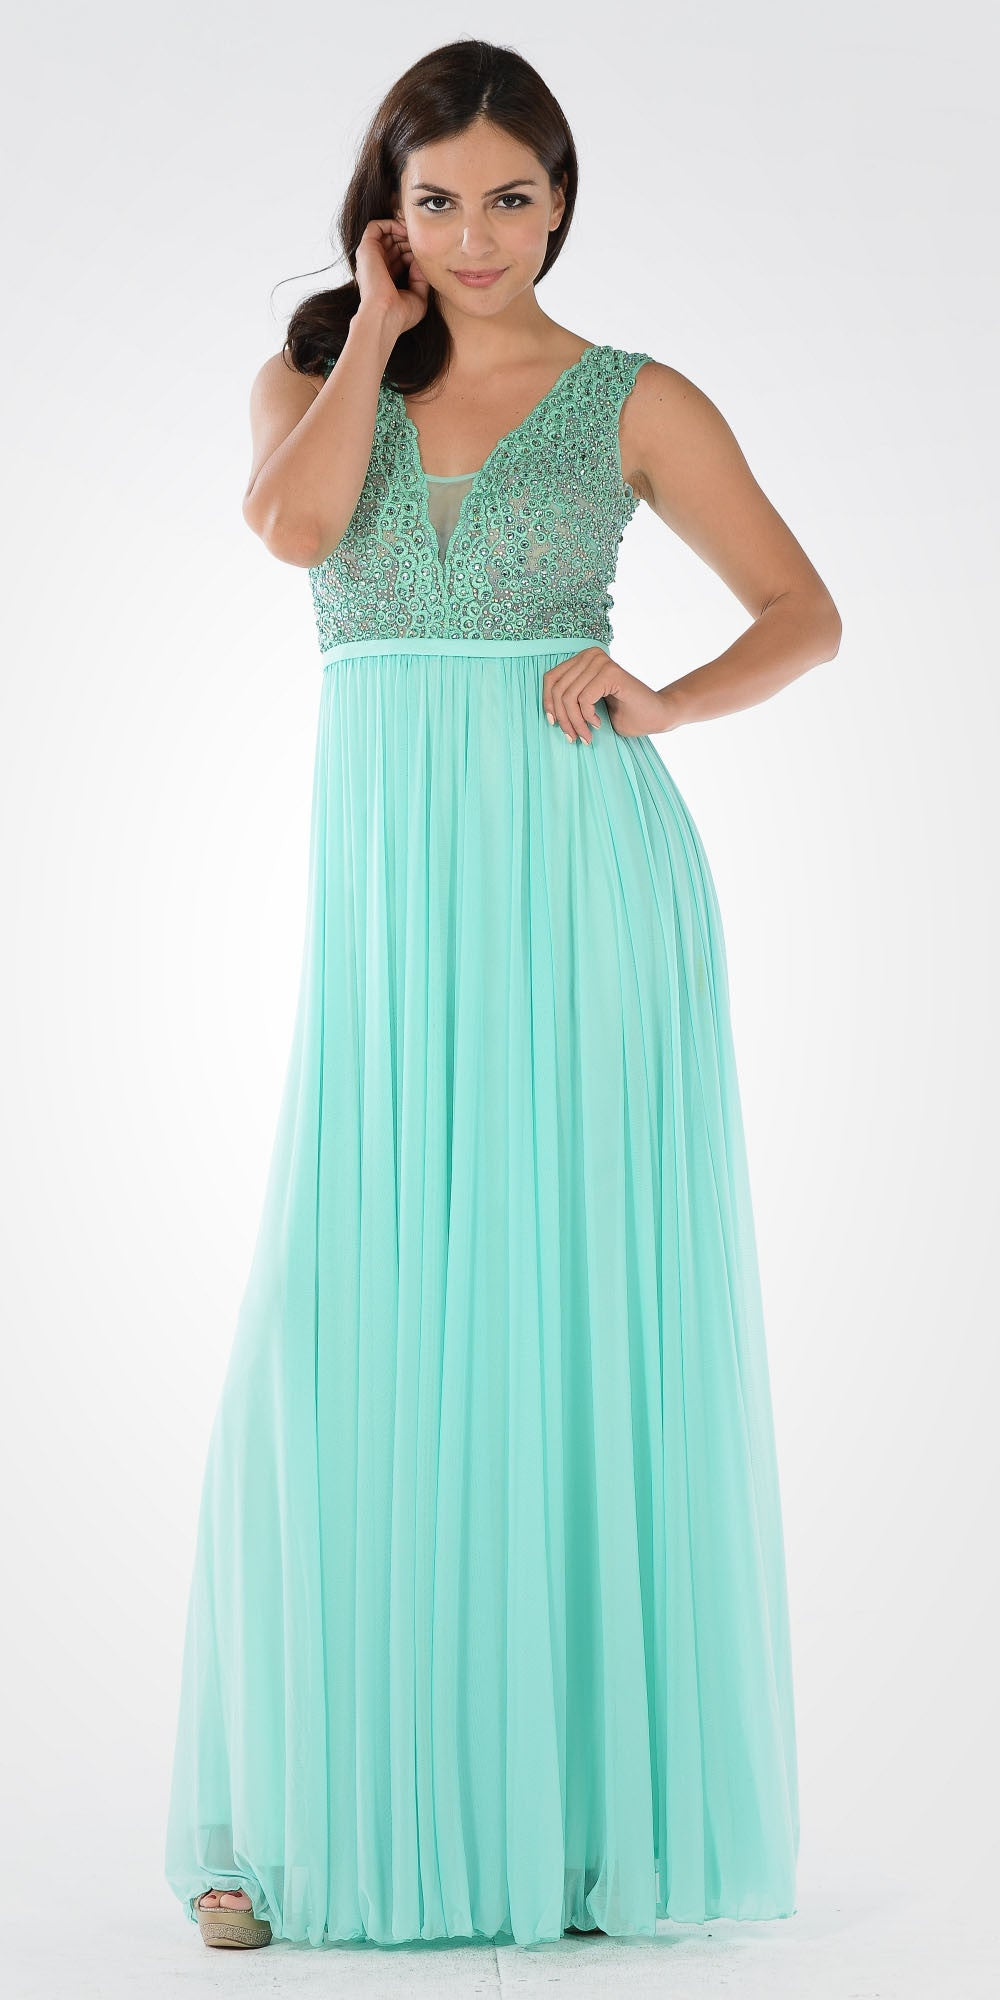 Lace Bead Appliqued Bodice Floor Length Formal Dress V-Neck Mint